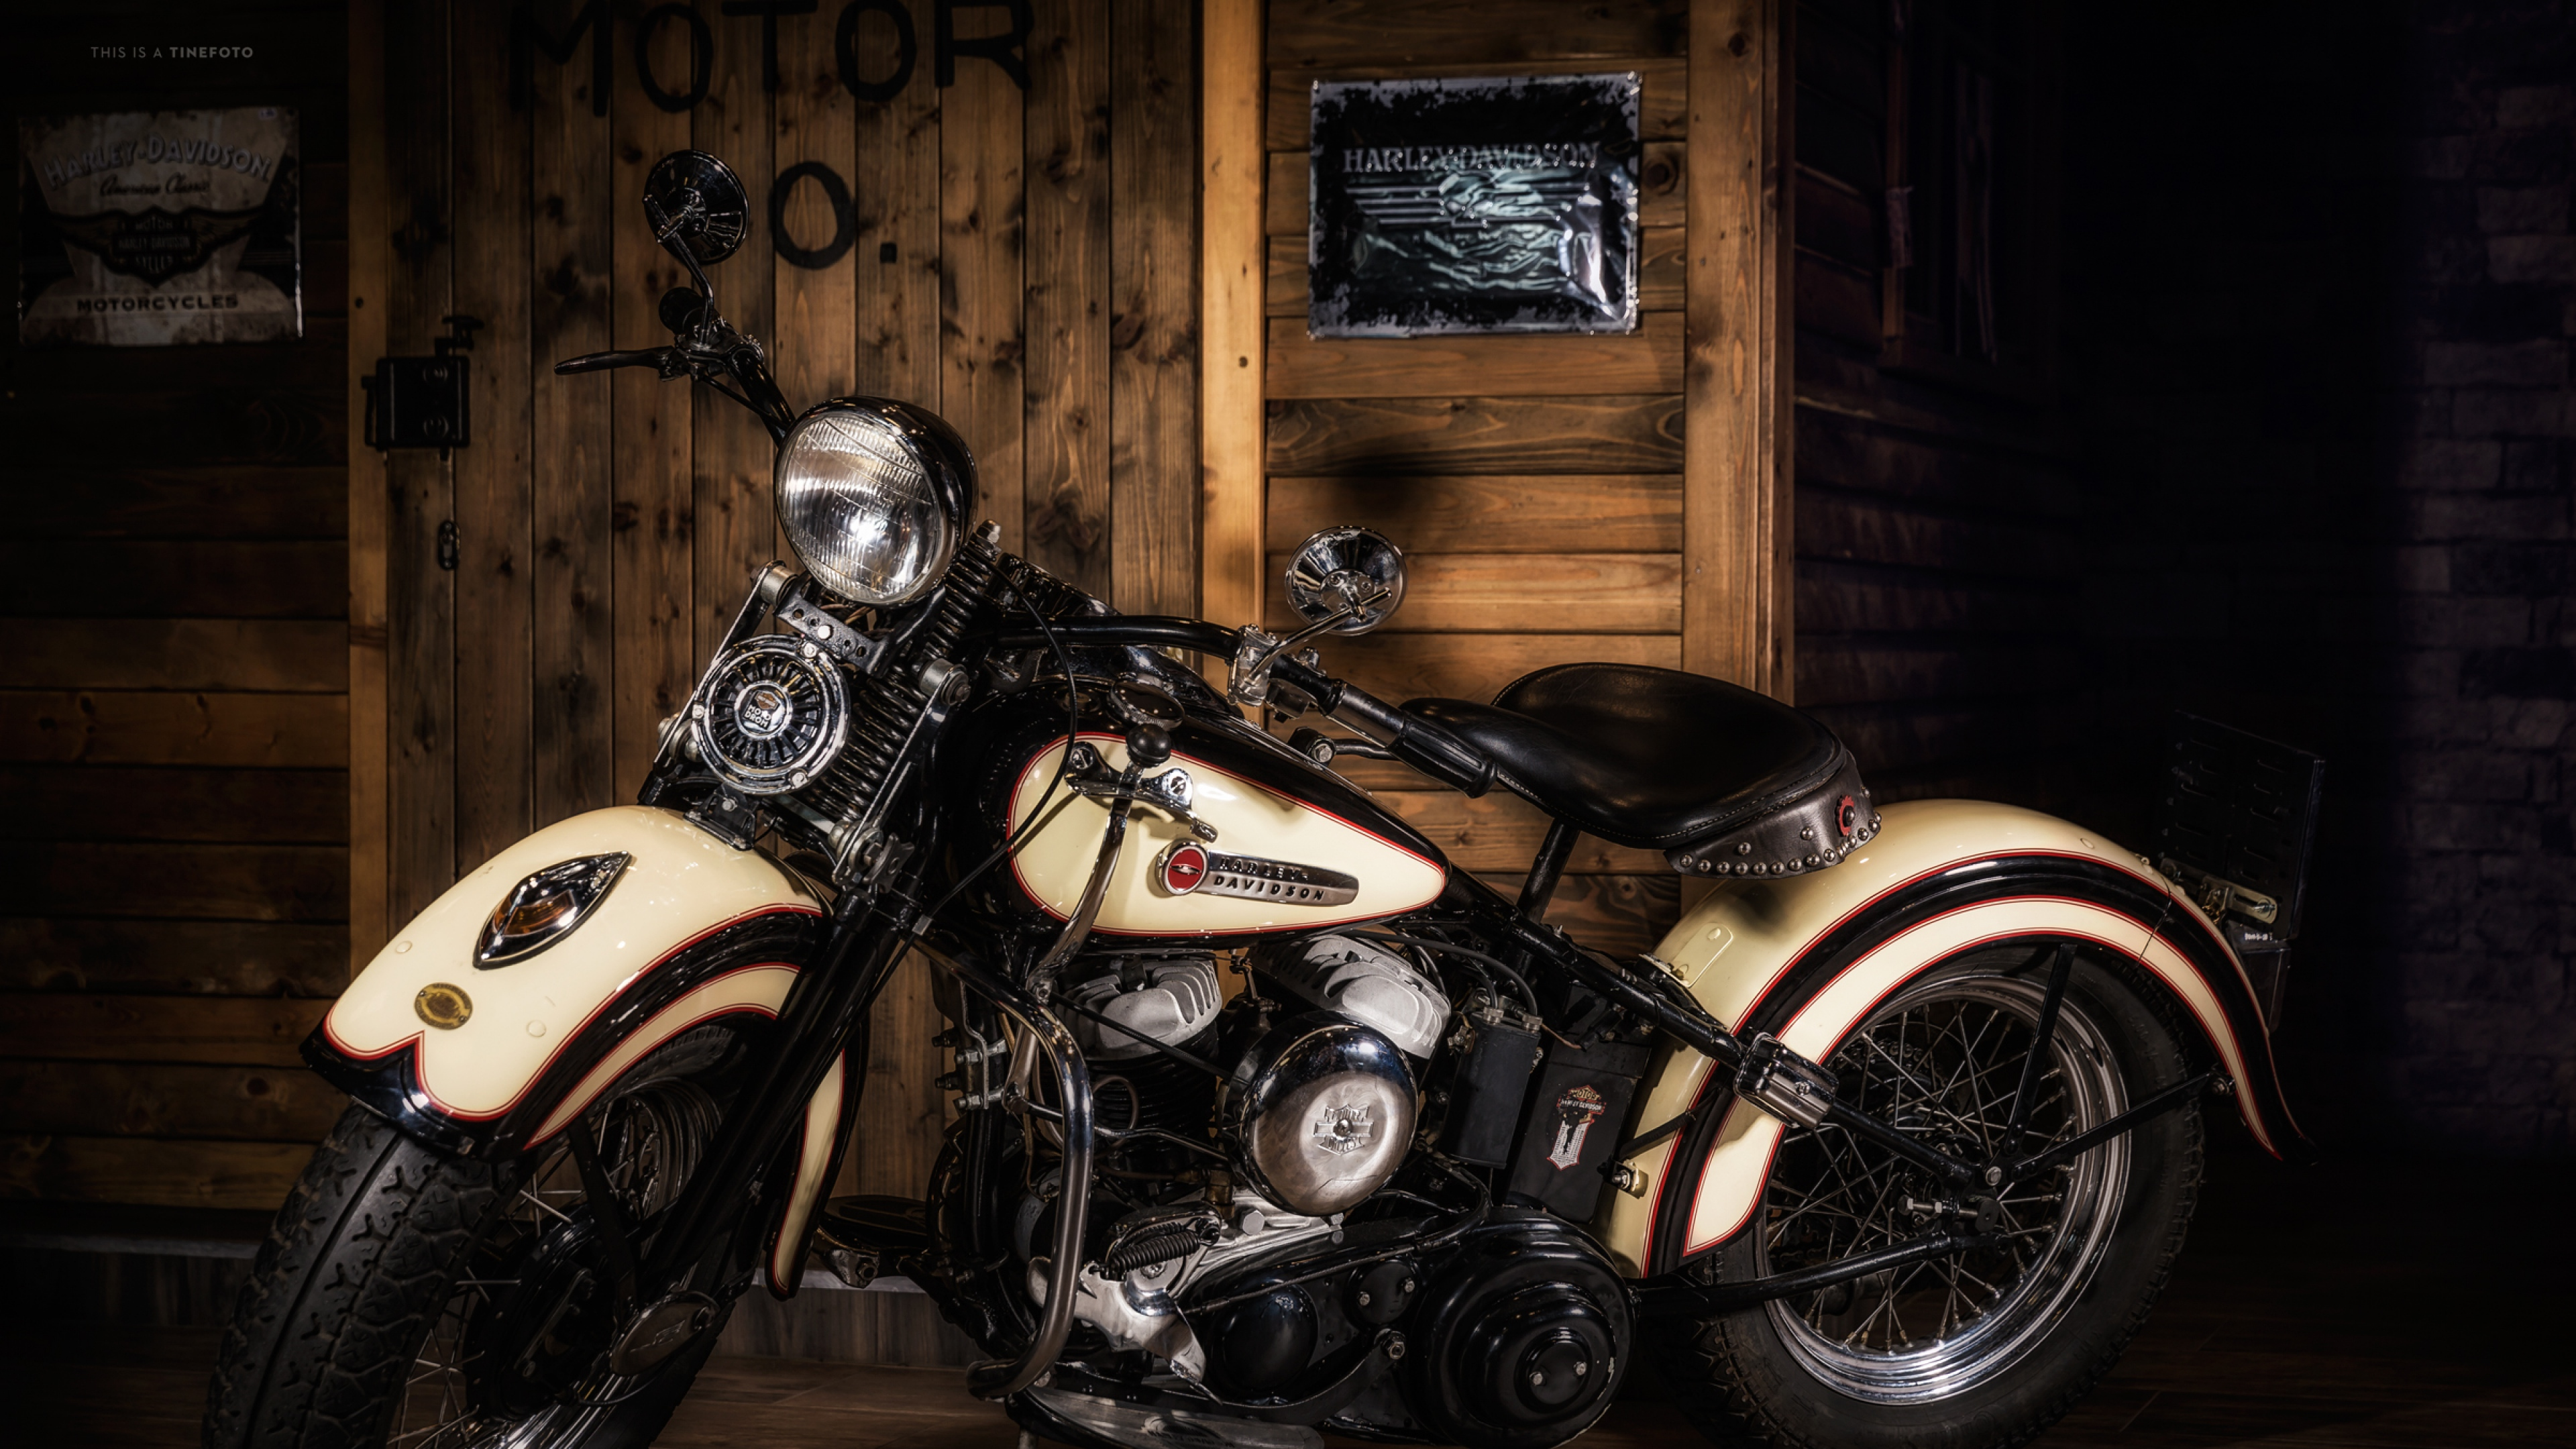 Harley Street 500 >> Harley Davidson, HD Bikes, 4k Wallpapers, Images, Backgrounds, Photos and Pictures